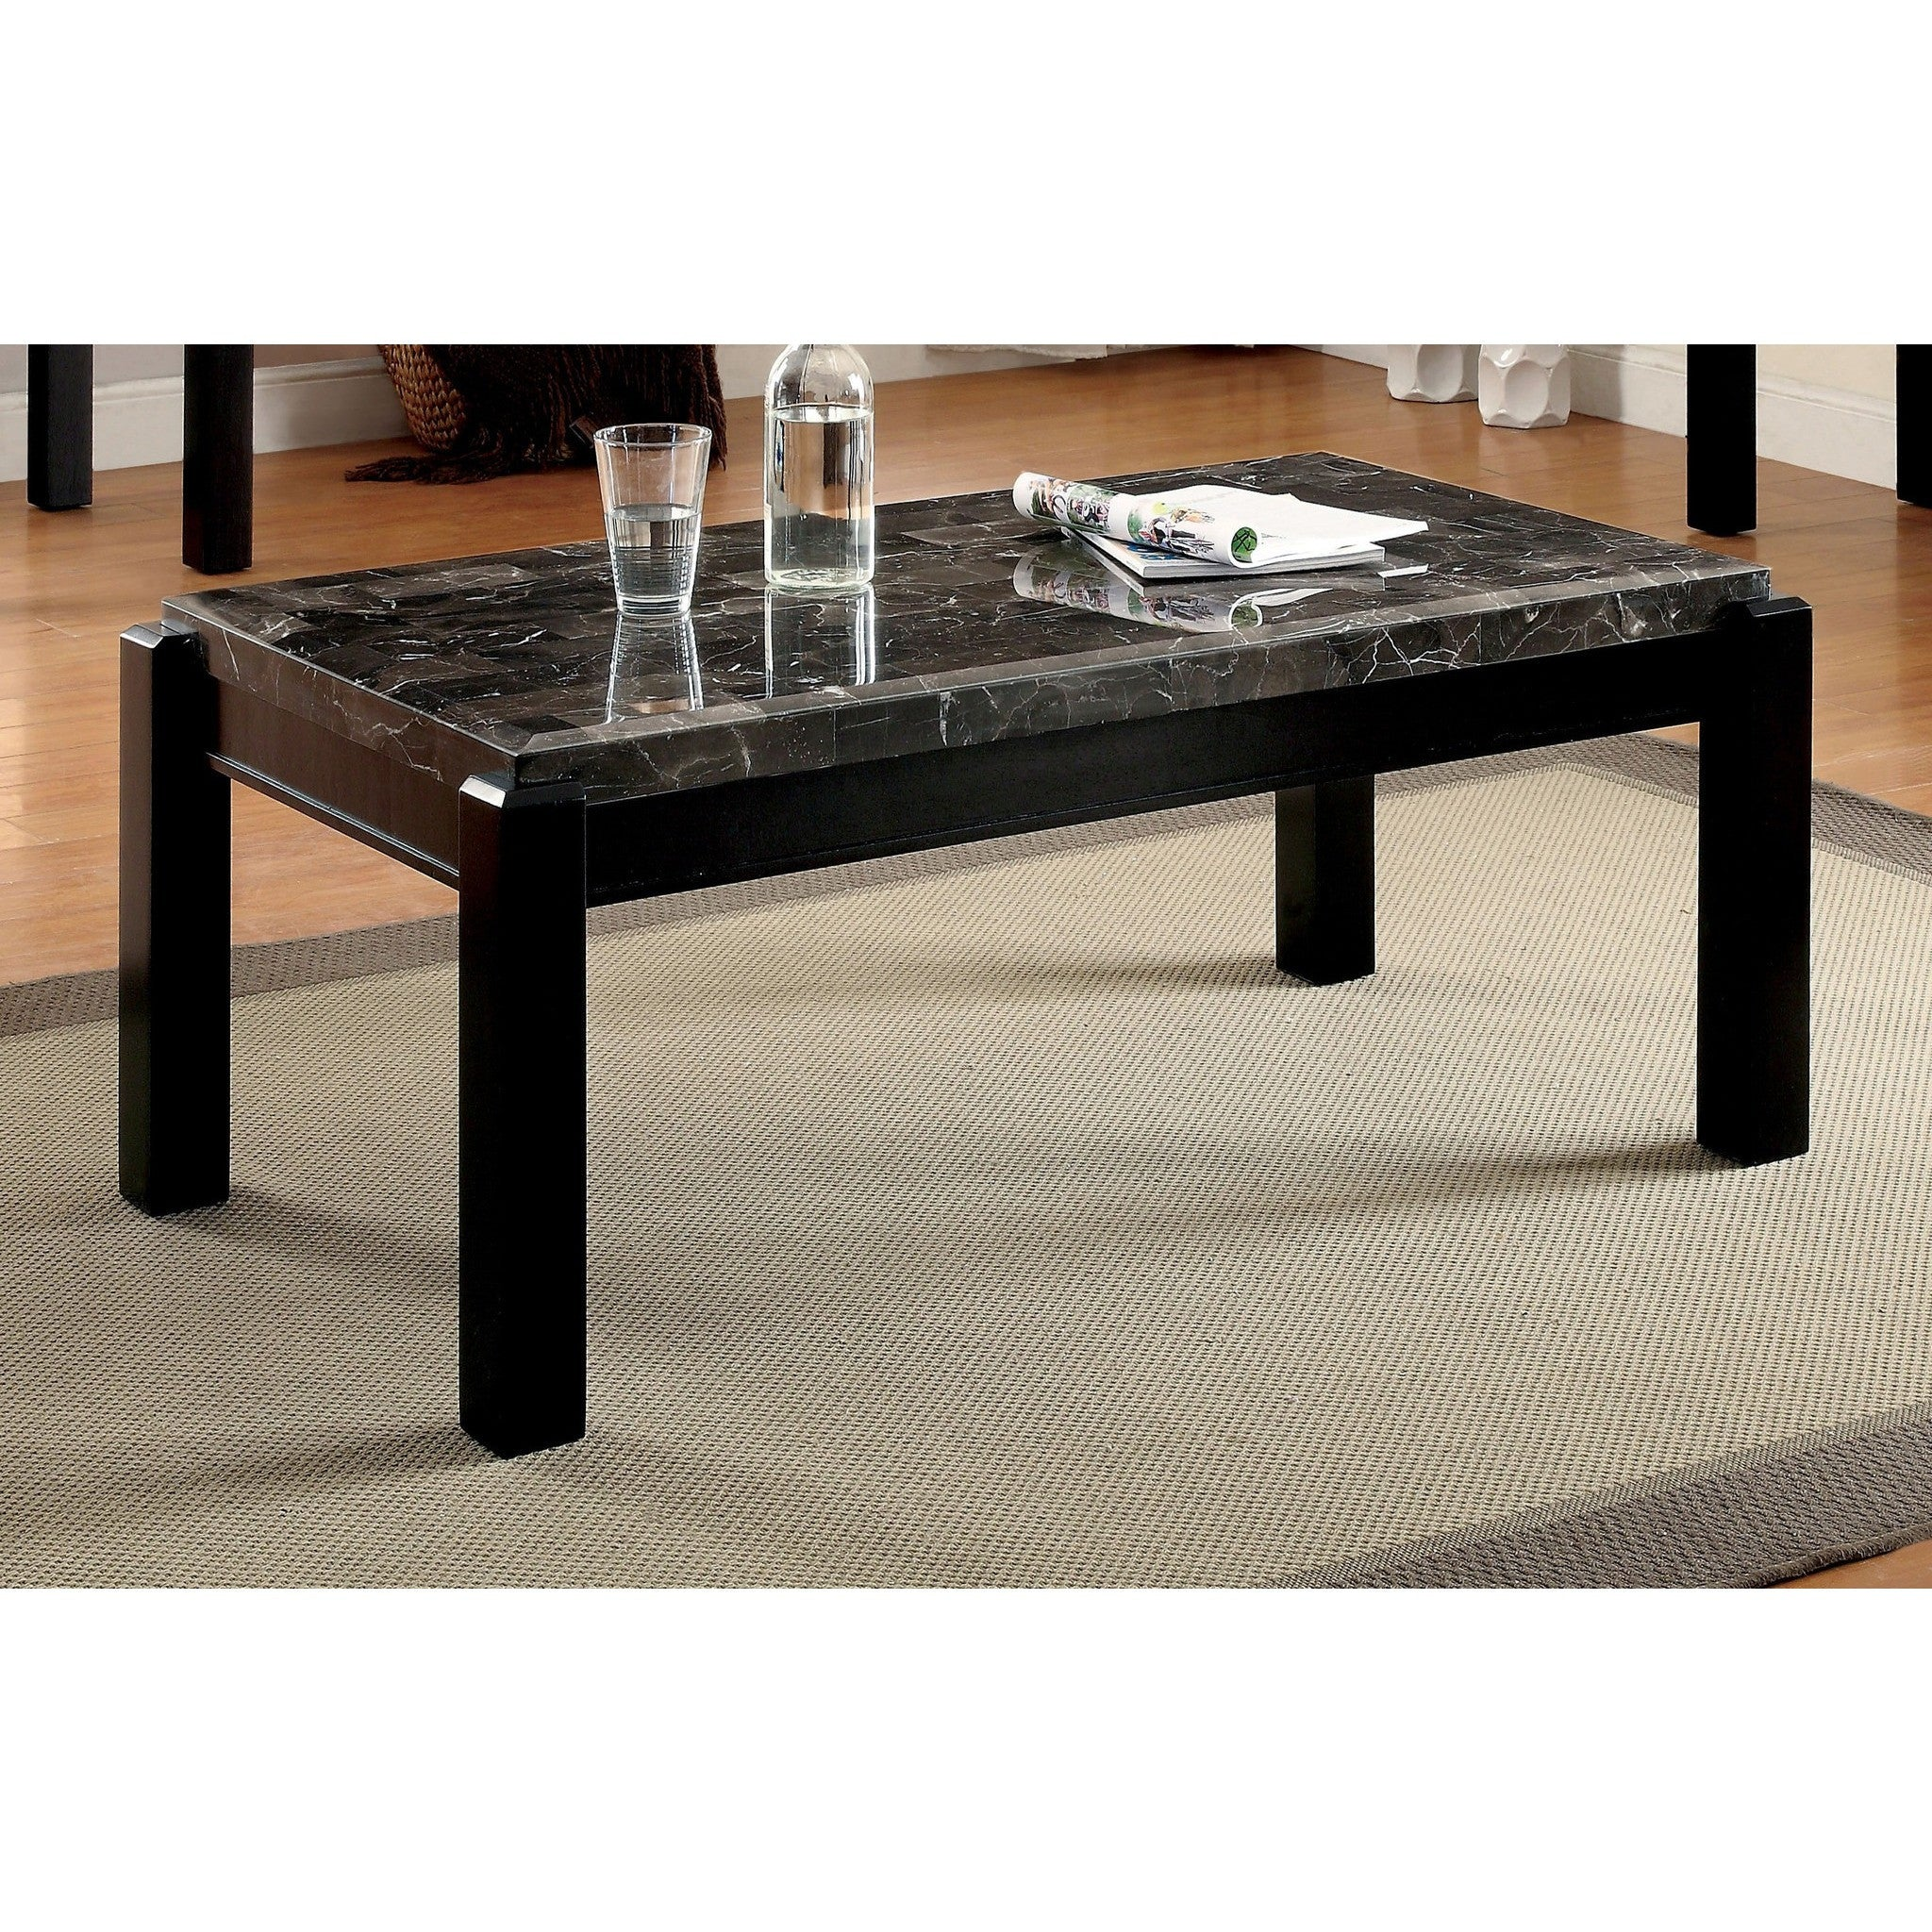 Astounding Micco Contemporary Style Faux Marble Coffee Table In Gray Ncnpc Chair Design For Home Ncnpcorg